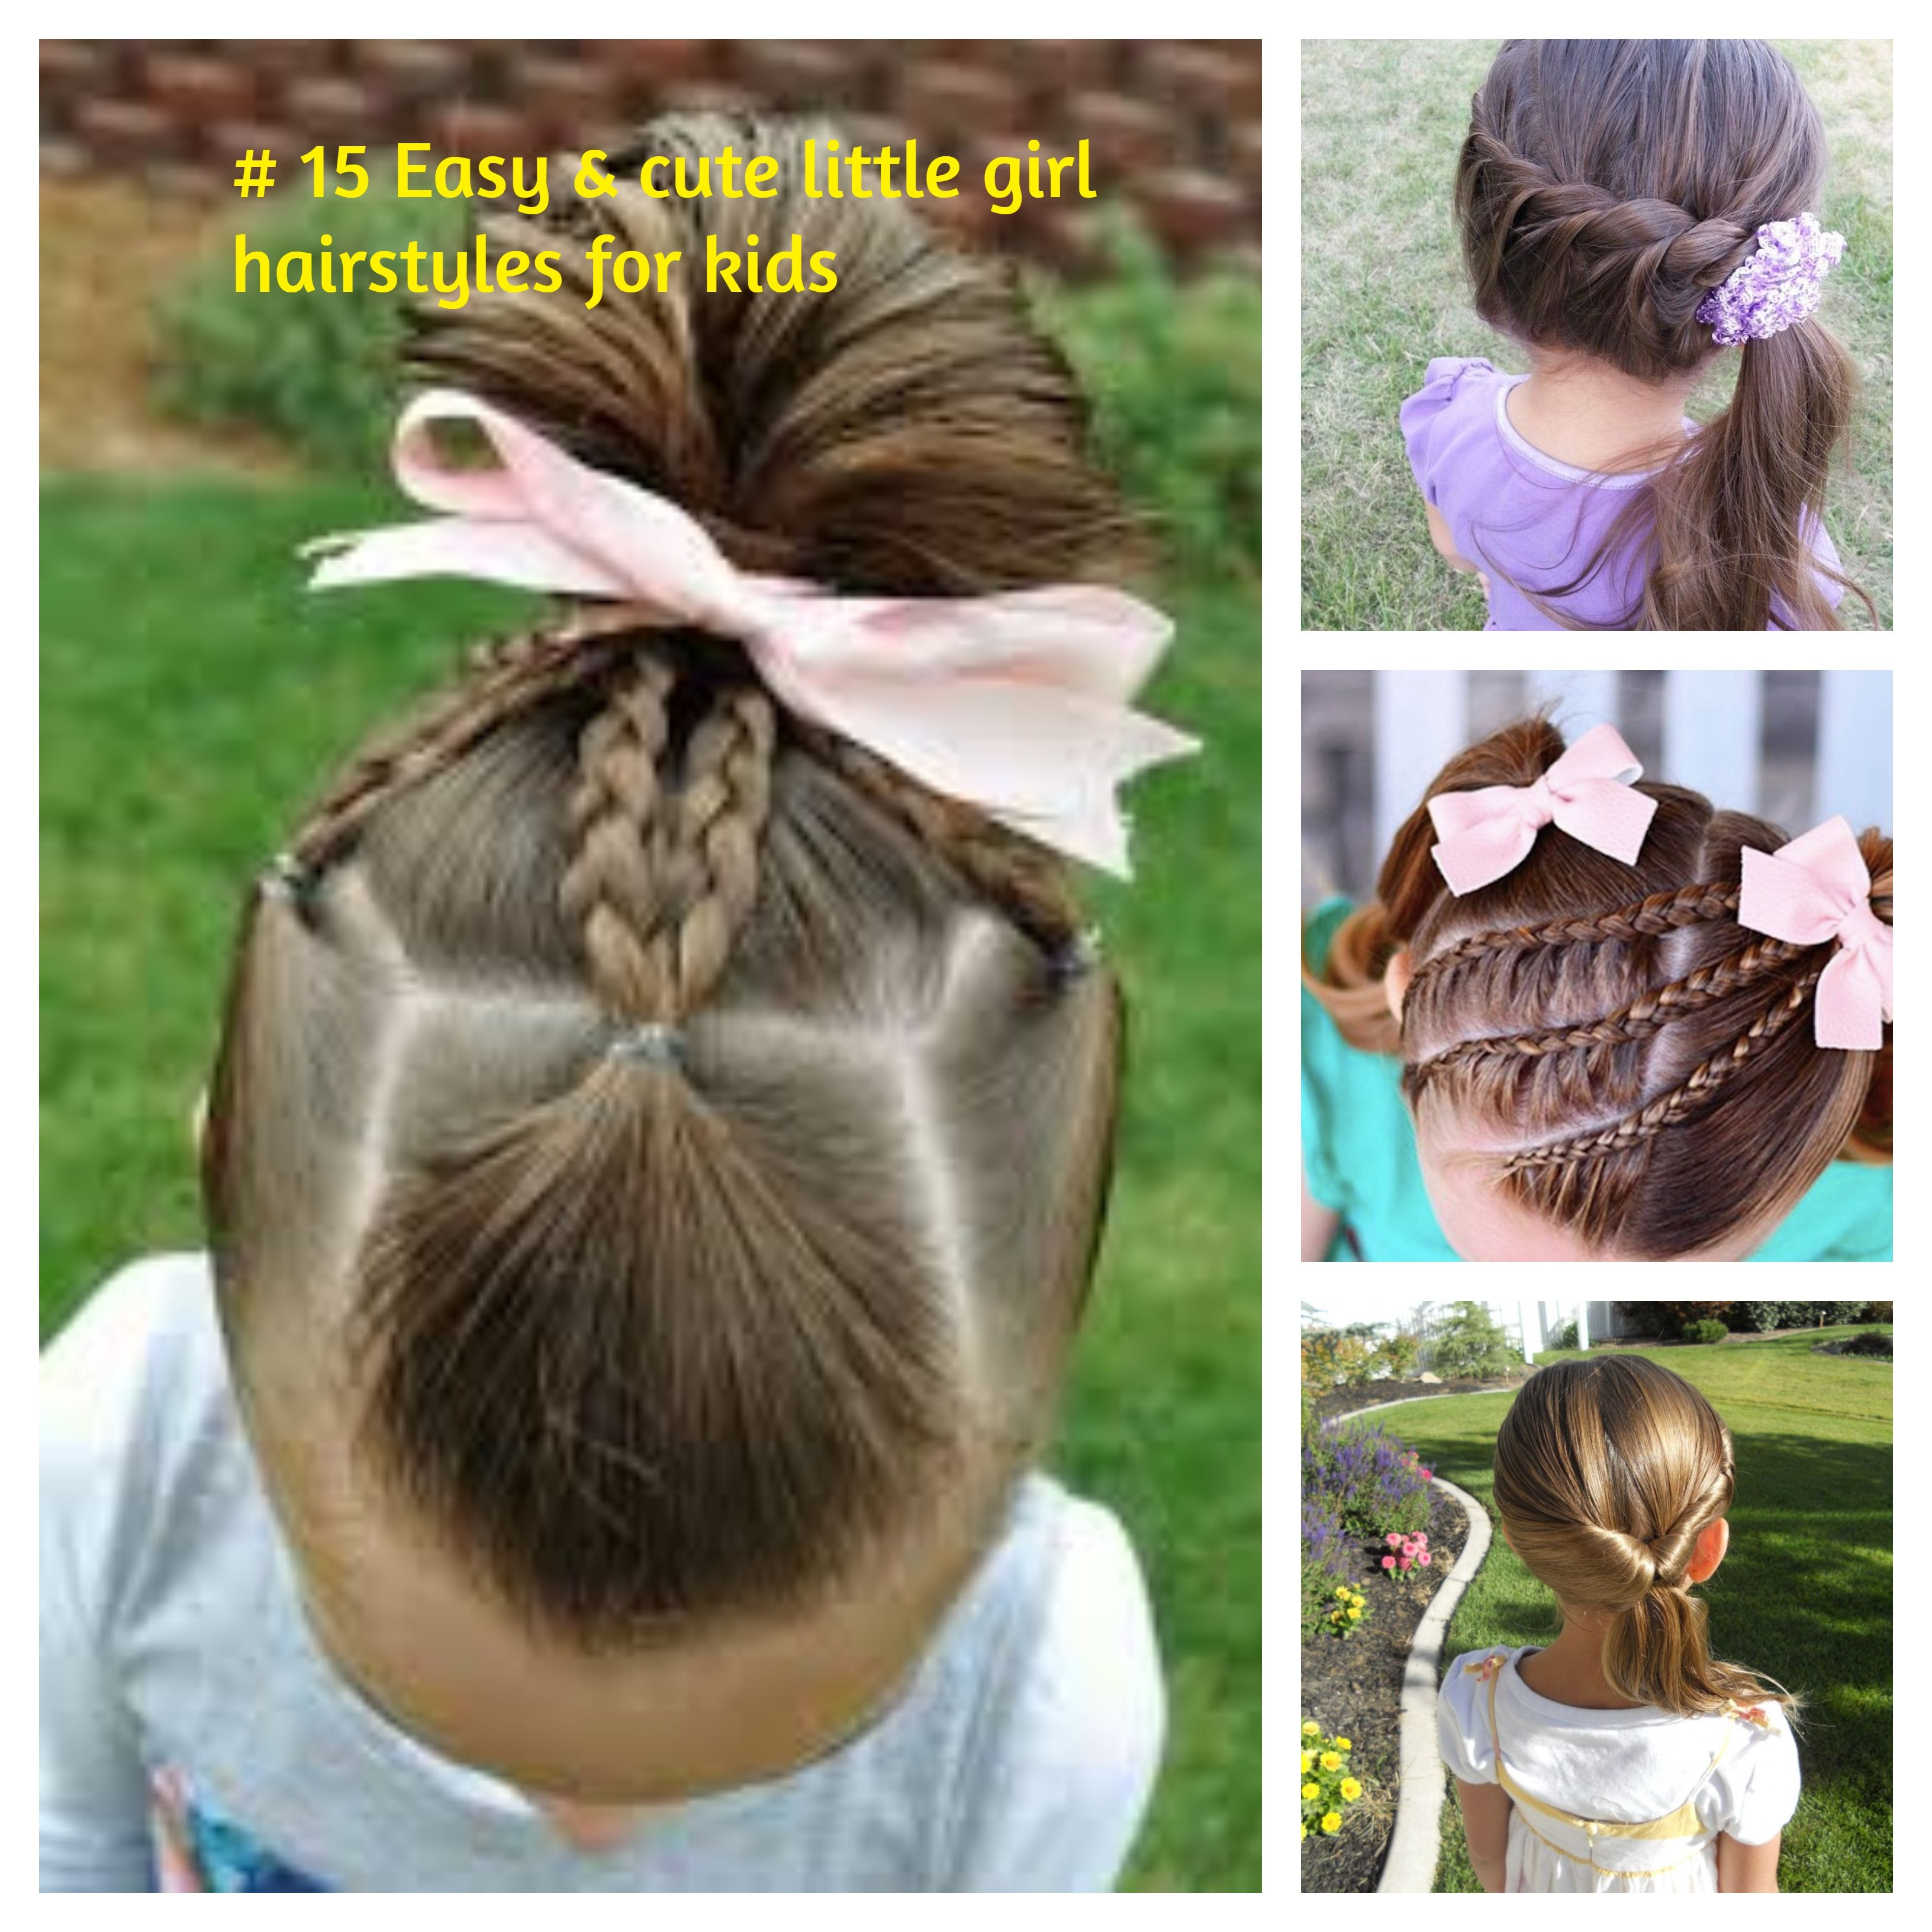 15 easy and cute little girl hairstyle for kids: simple